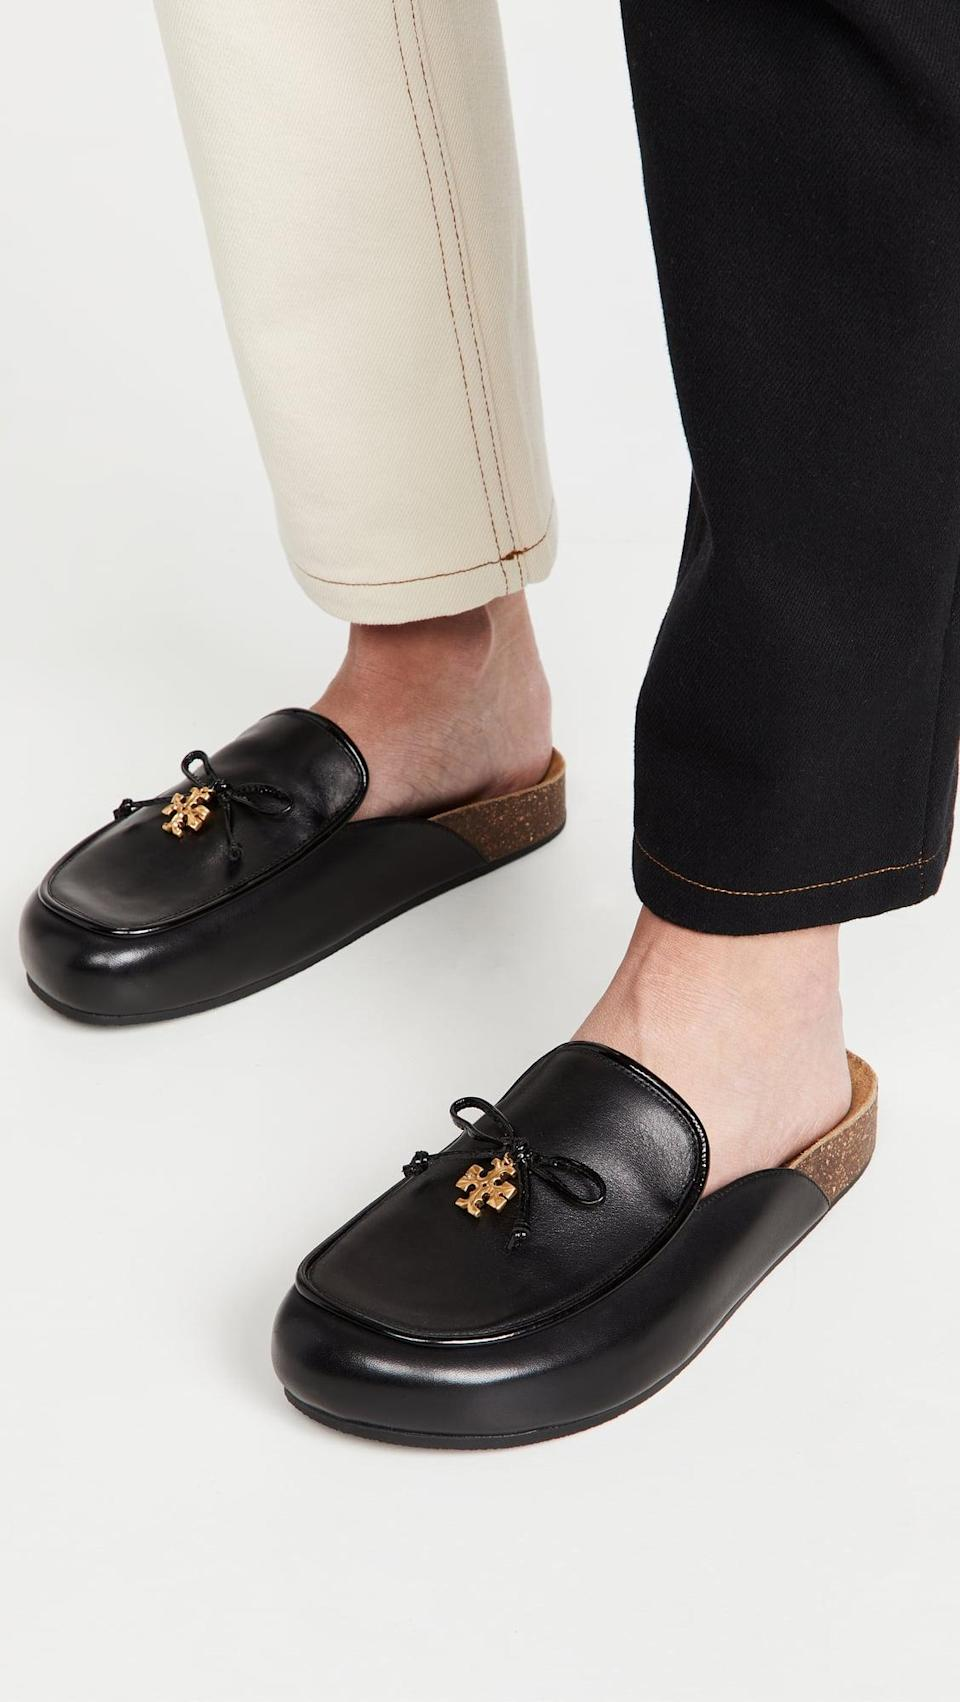 <p>The <span>Tory Burch Tory Charm Mules</span> ($278) are a great way to try the trend, with a more versatile look. The comfy shoes will match with jeans, trousers, and more.</p>